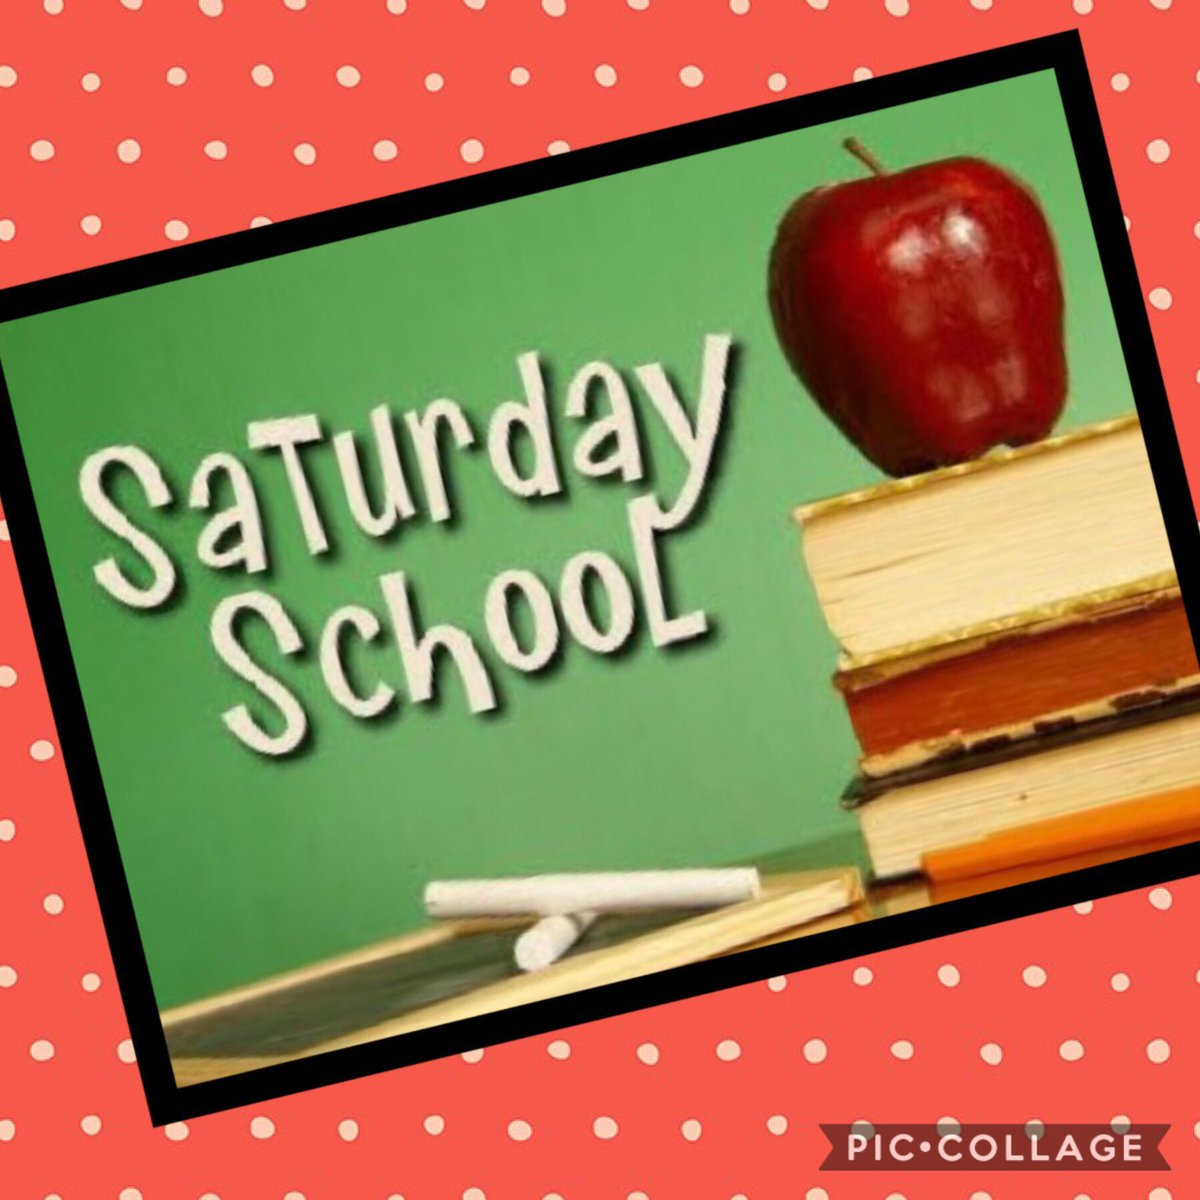 #Y6  Saturday School starts tomorrow! Be at the main office at 8:50am.  #SATs #Revision https://t.co/IIYDsHiN7G